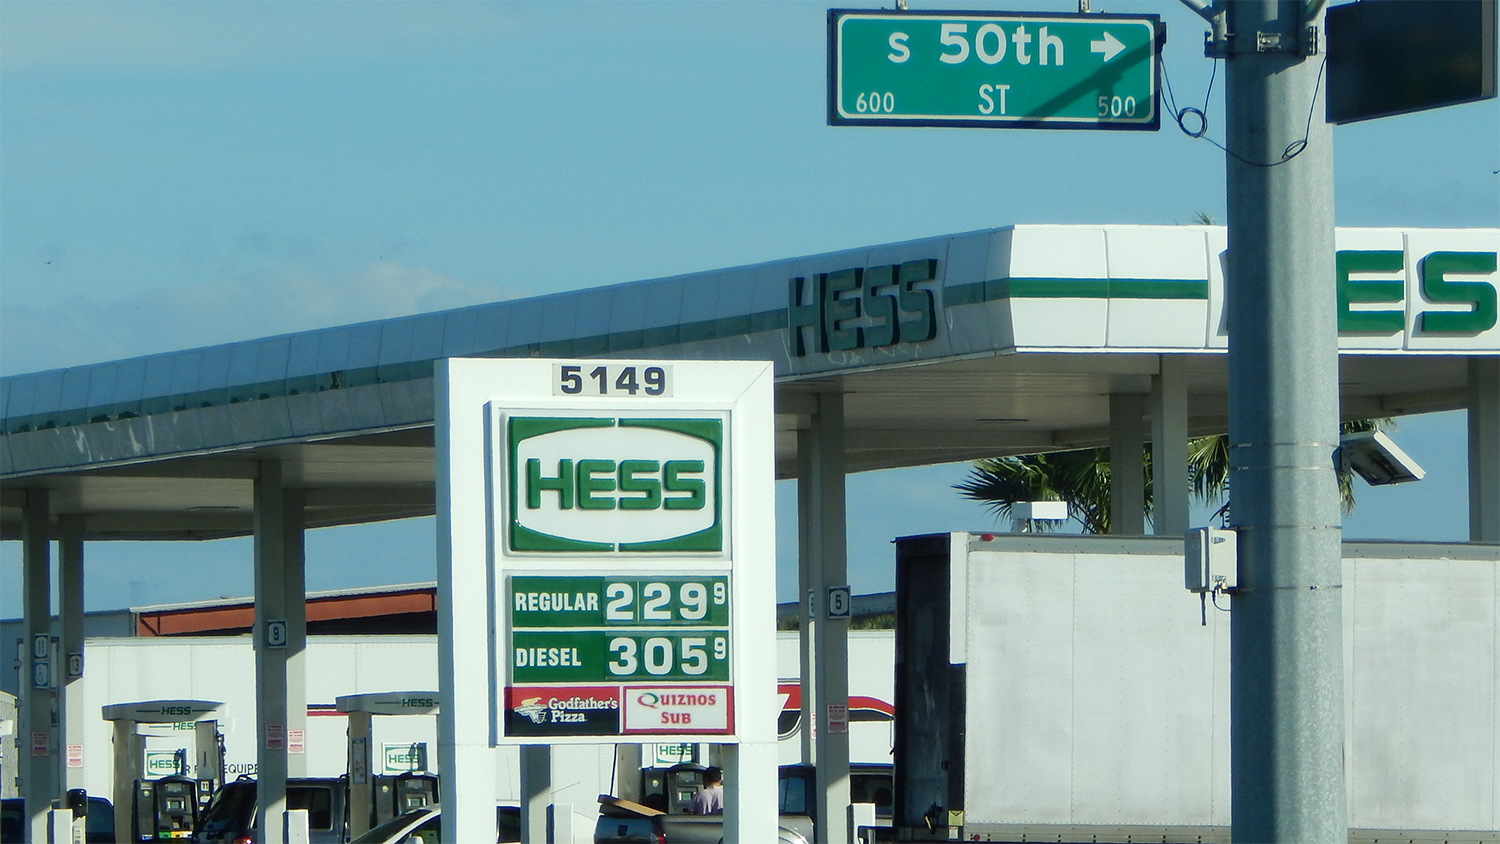 Regular gas was $2.29 on December 28, 2014 at the Hess Station on Adamo Drive, Tampa, FL/photonews247.com